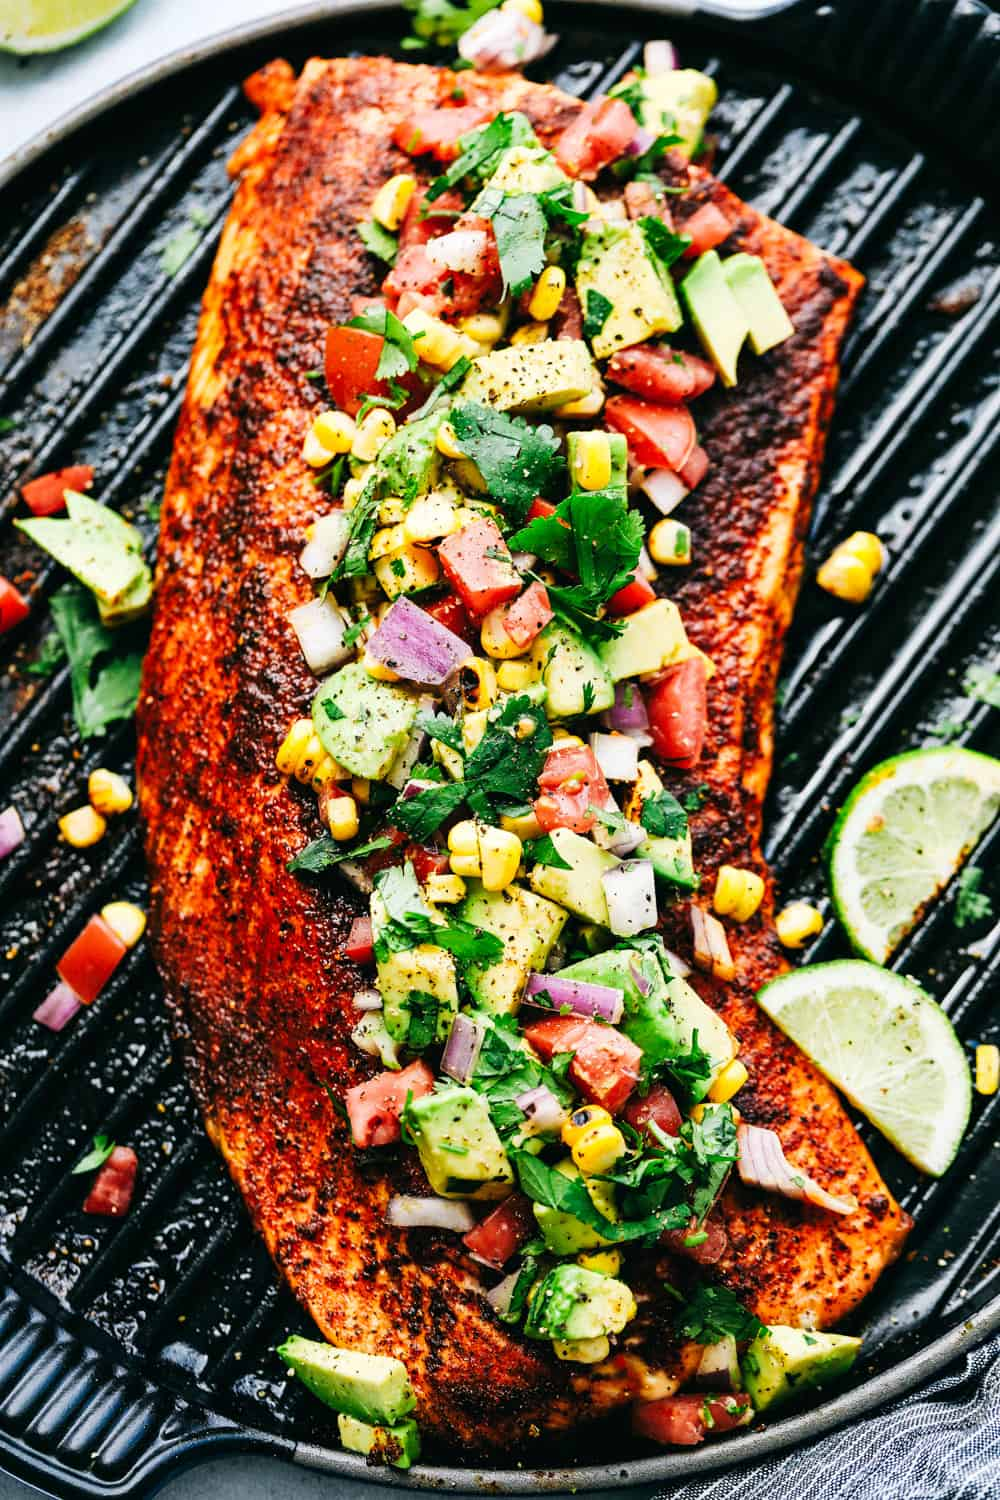 Awesome Grilled Salmon With Avocado Salsa The Recipe Critic